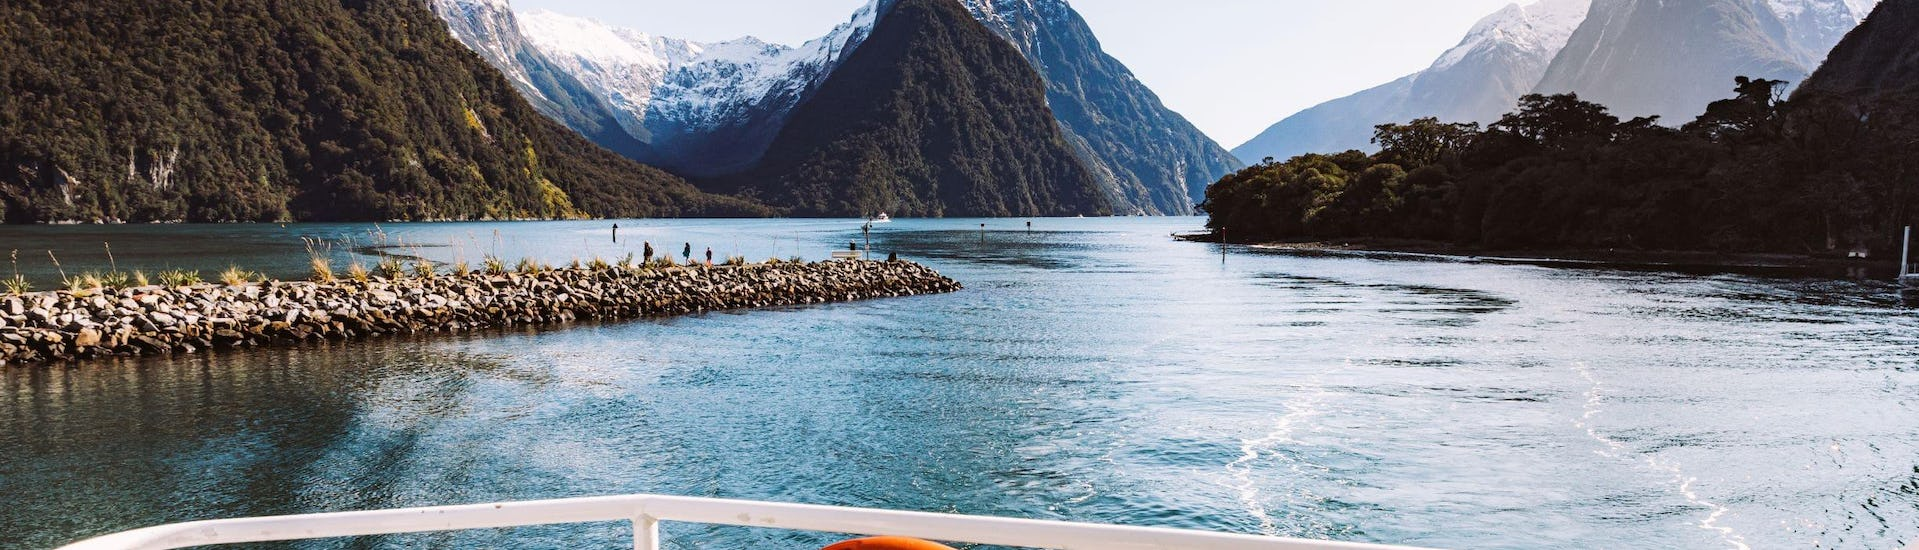 As a part of the Coach Tour with Milford Sound Cruise - Cruiser Tour, people are enjoying magnificent views from a modern catamaran operated by Jucy Cruise.